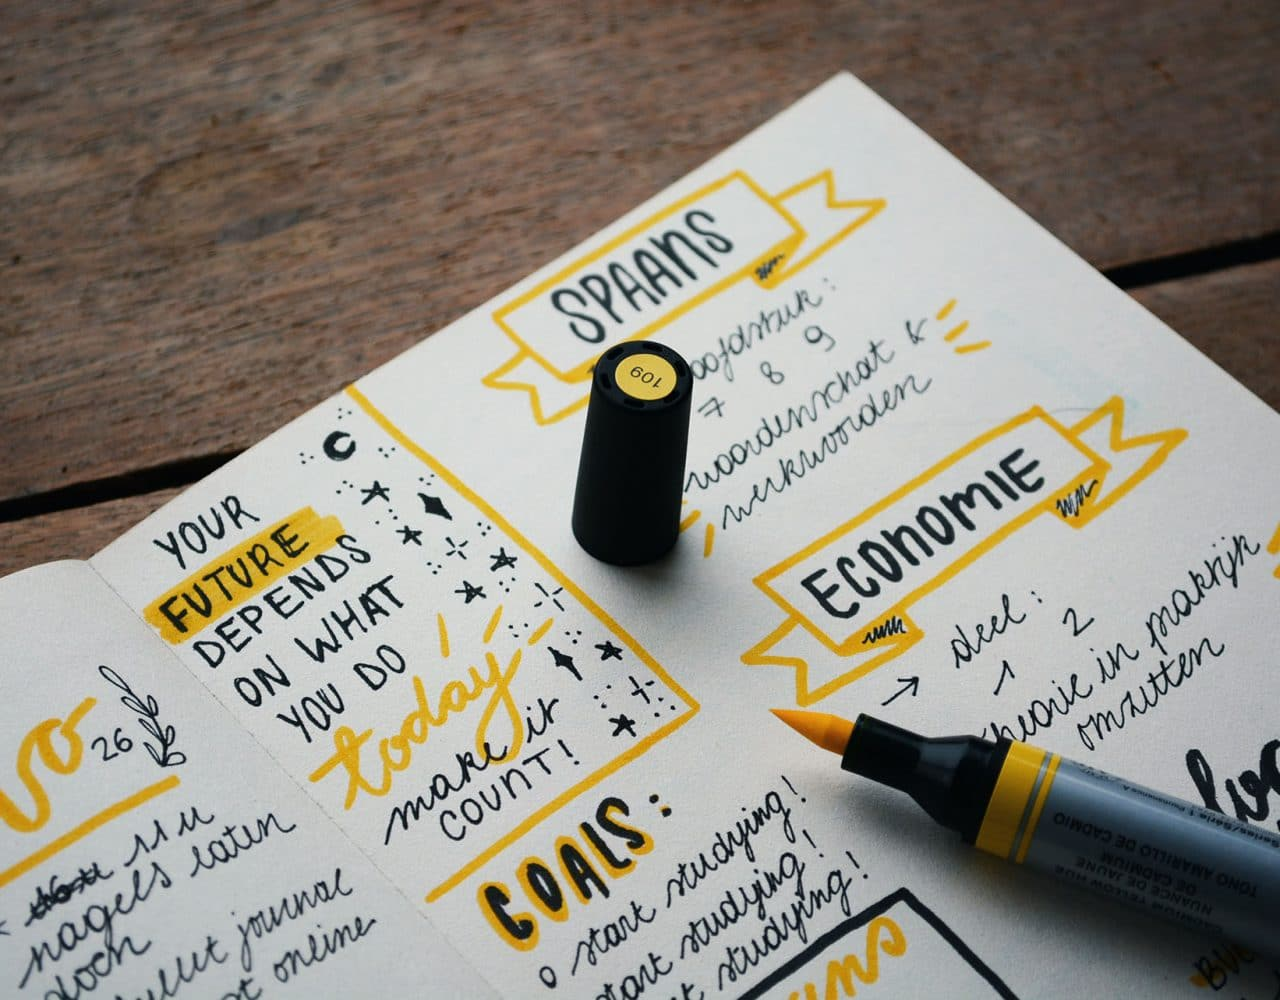 7 Reasons Why You Need a Written Vision Plan